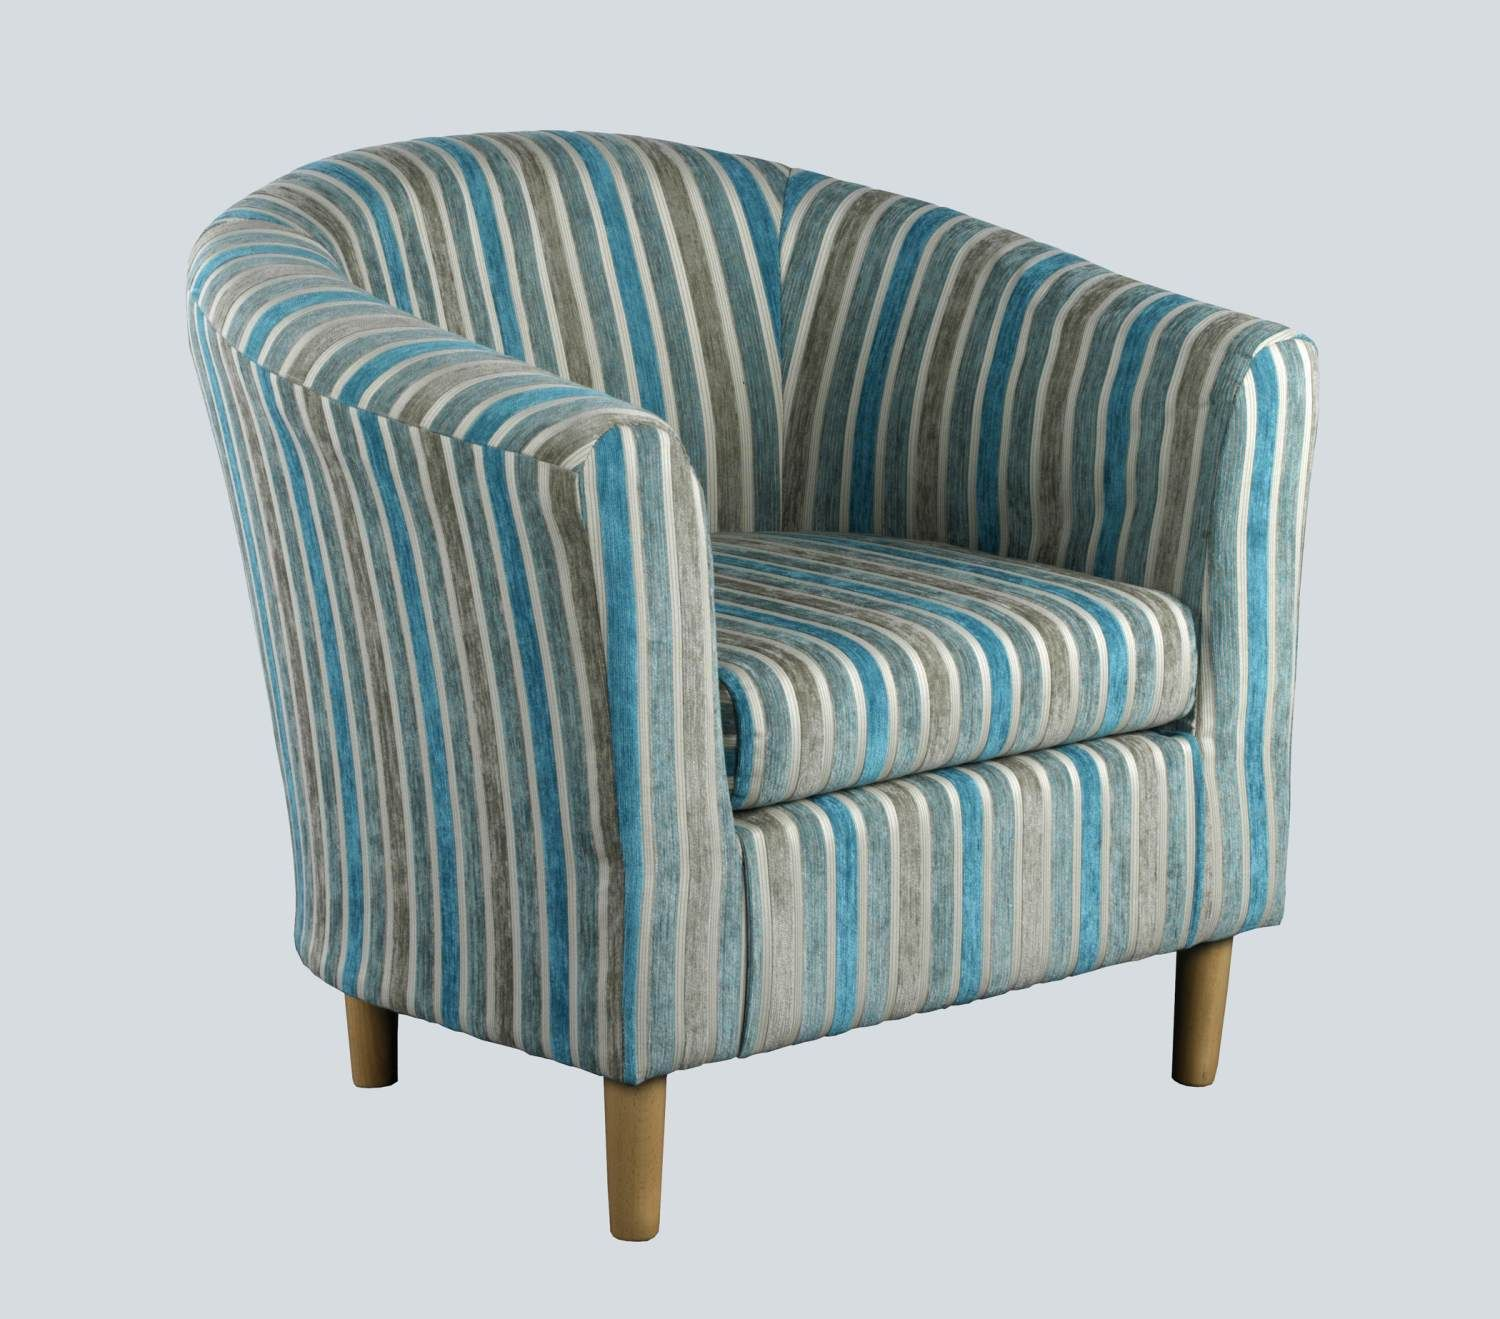 Teal Striped Tub Chair Tub Chair Chair Living Room Decor